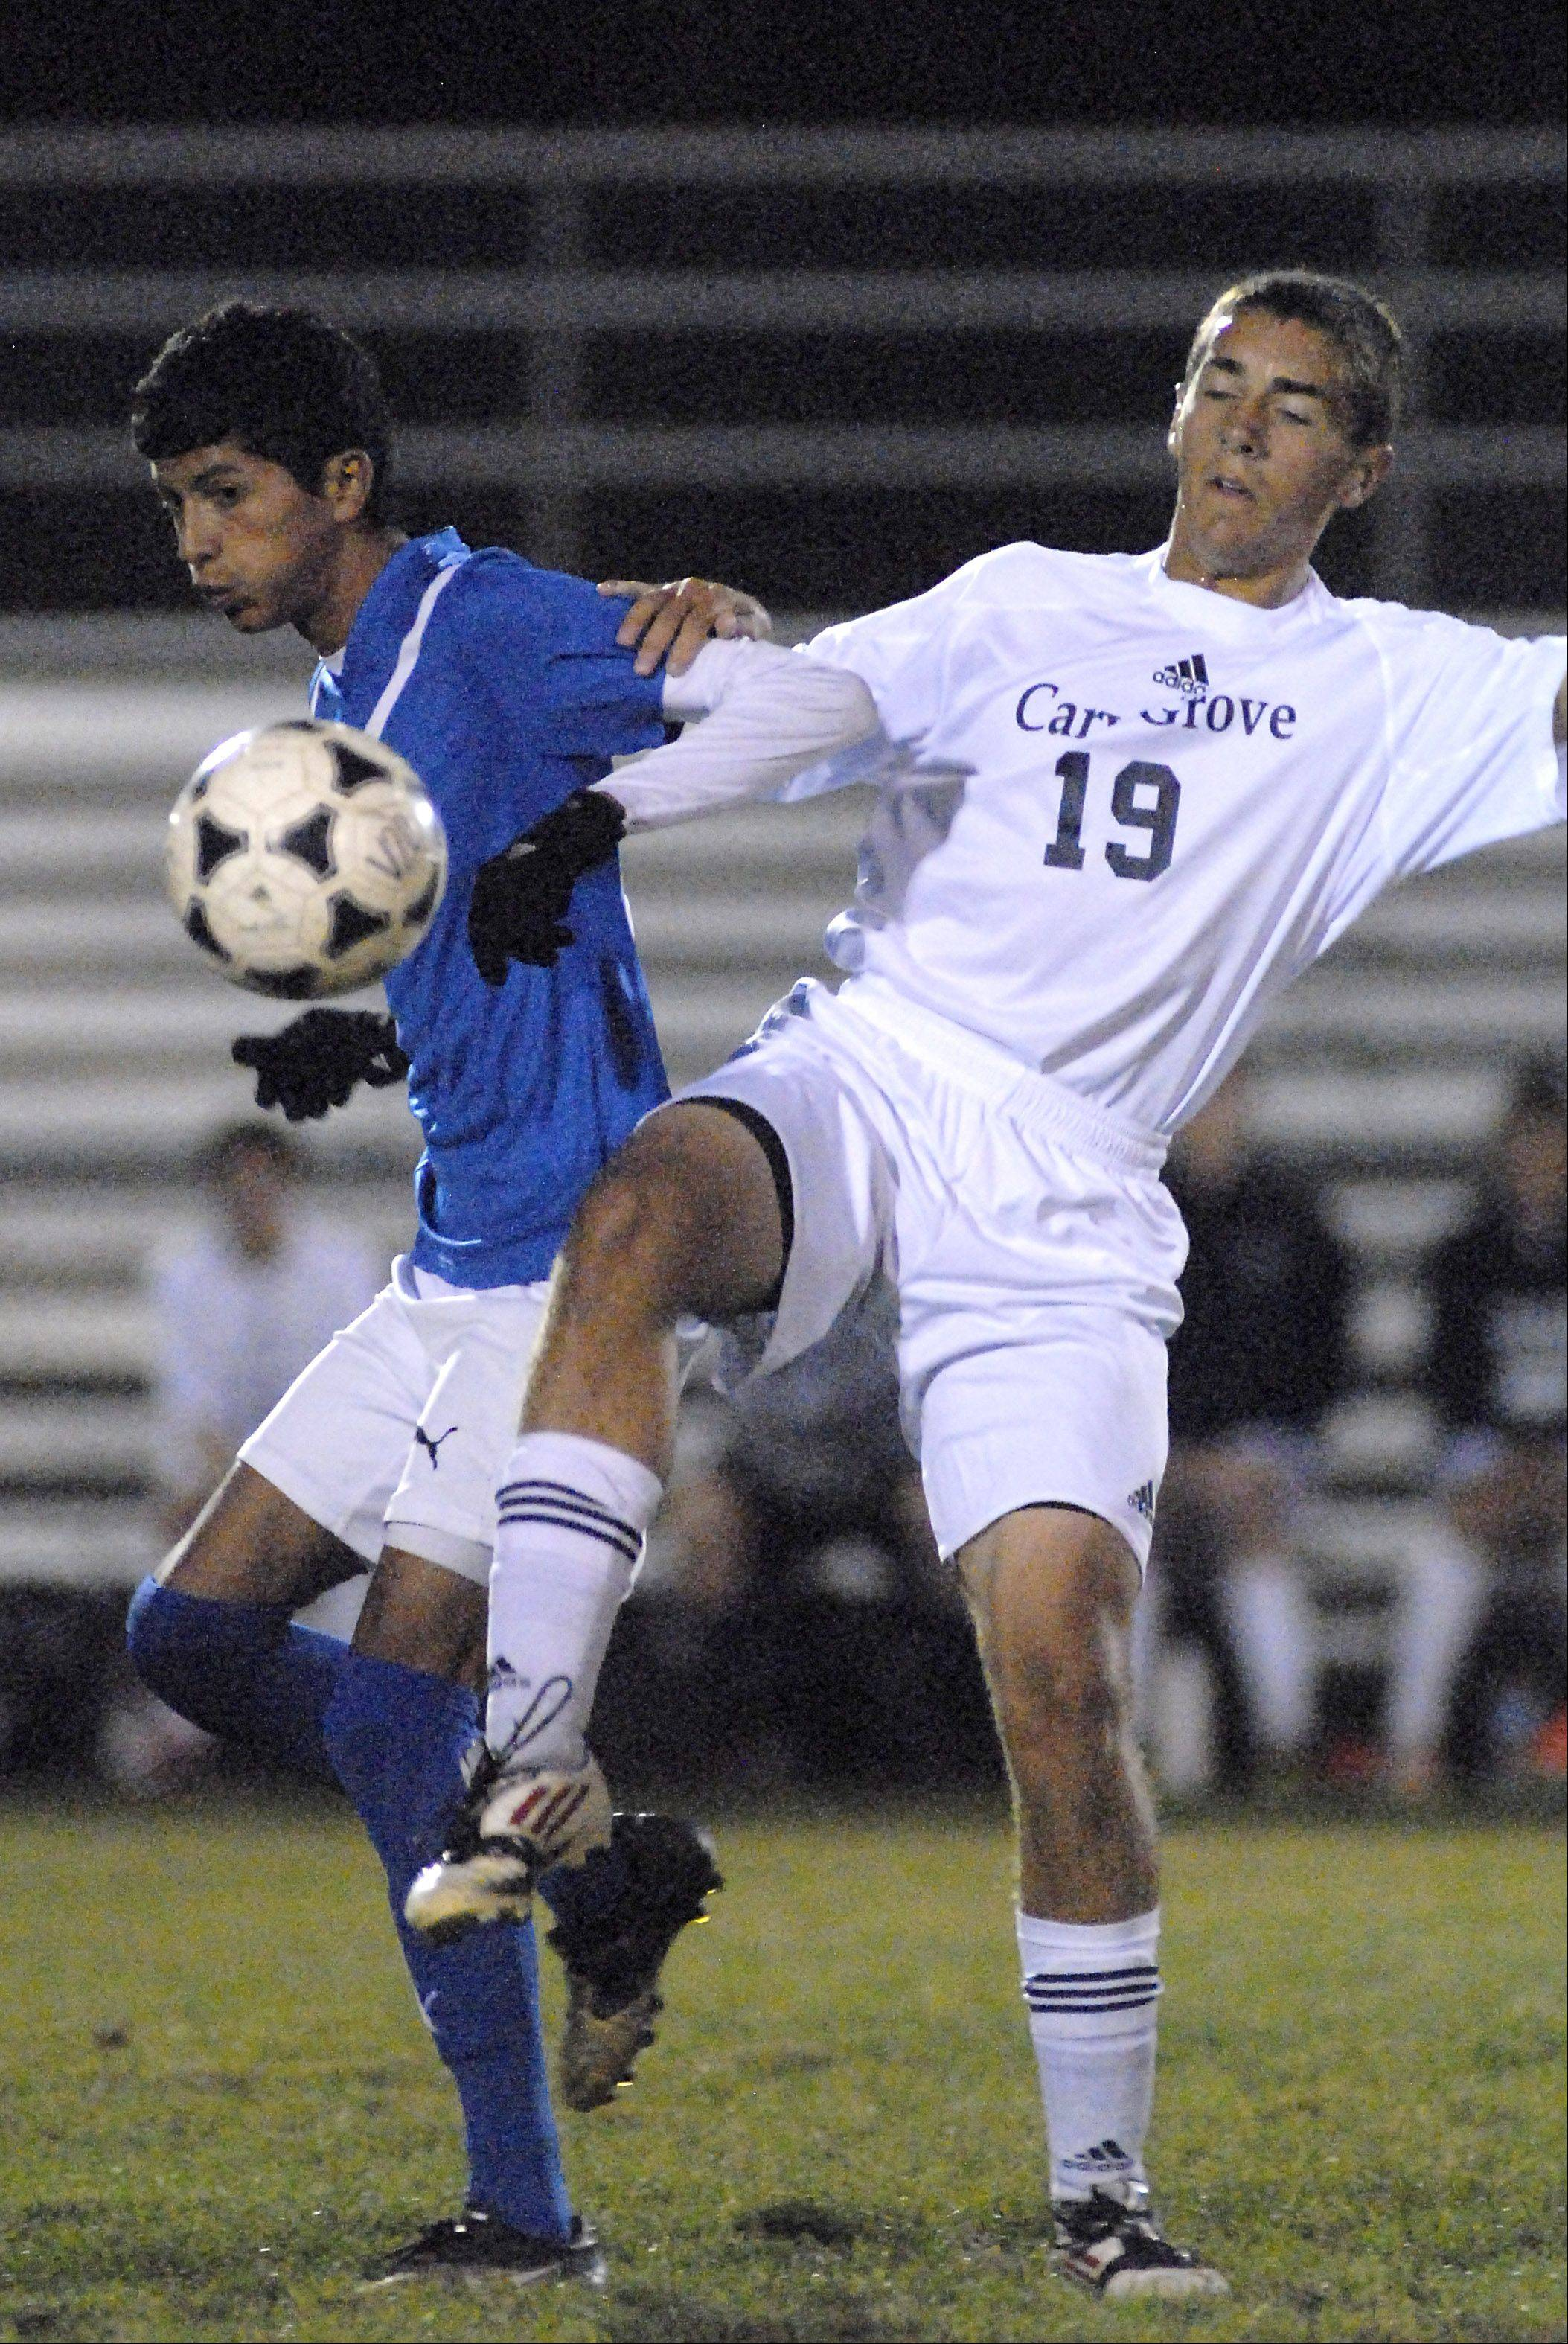 Dundee-Crown's Franciso Nava and Cary-Grove's Joey Klawitter collide while fighting for the ball in the first half on Tuesday, October 2.